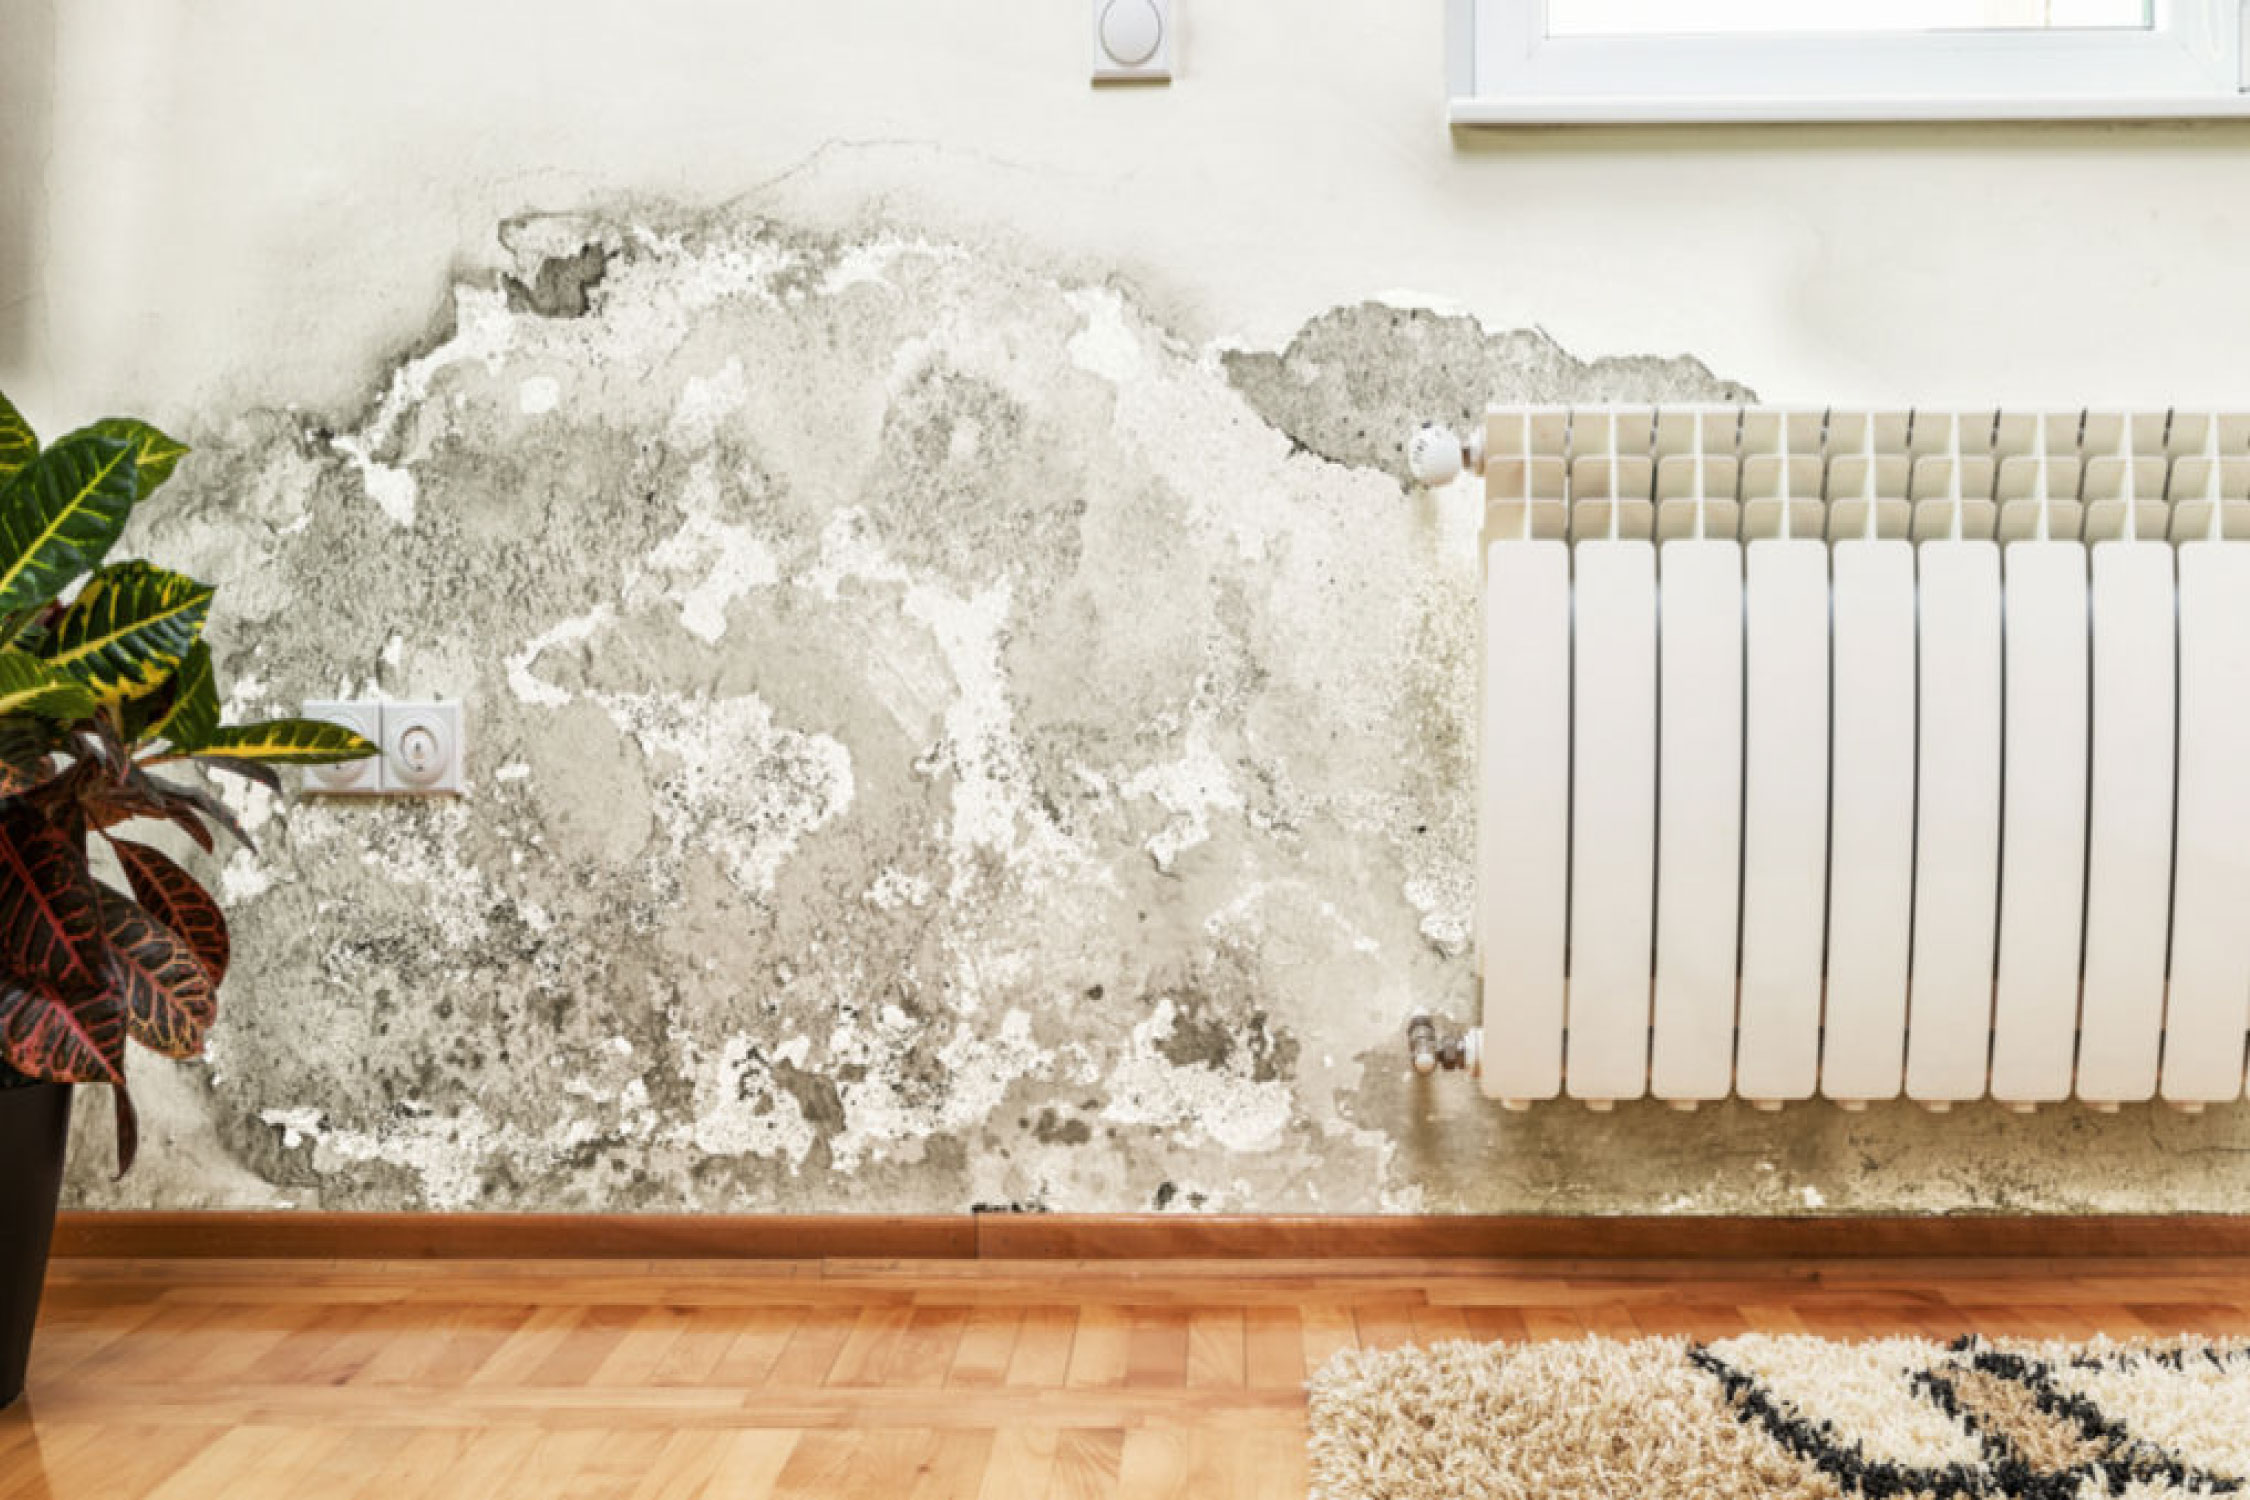 Indoor Humidity: How to Control It - Tips